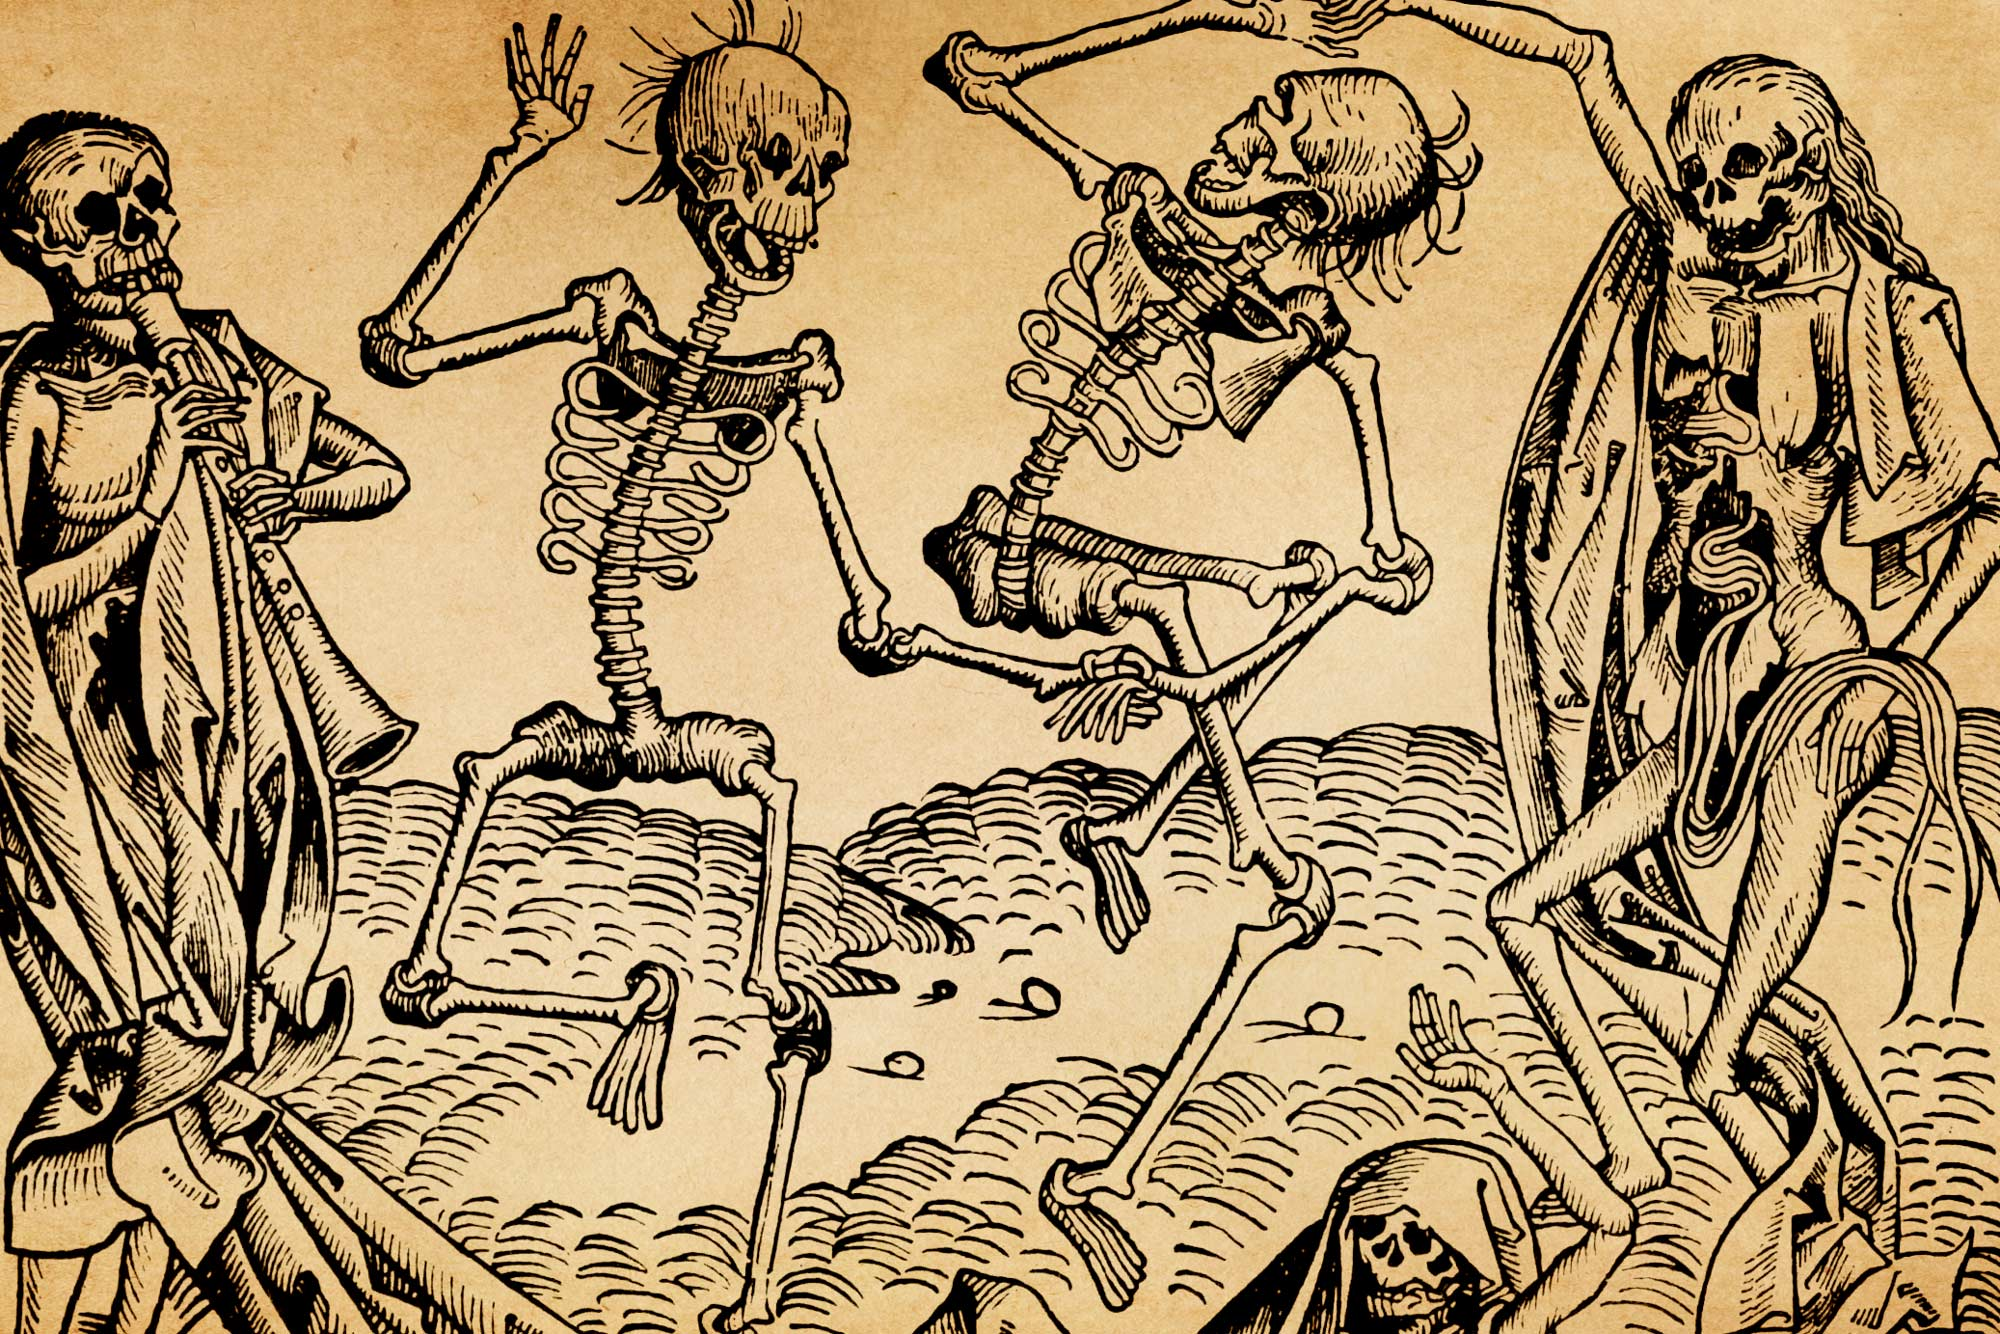 black_death_nuremberg_chronicle_header.jpg